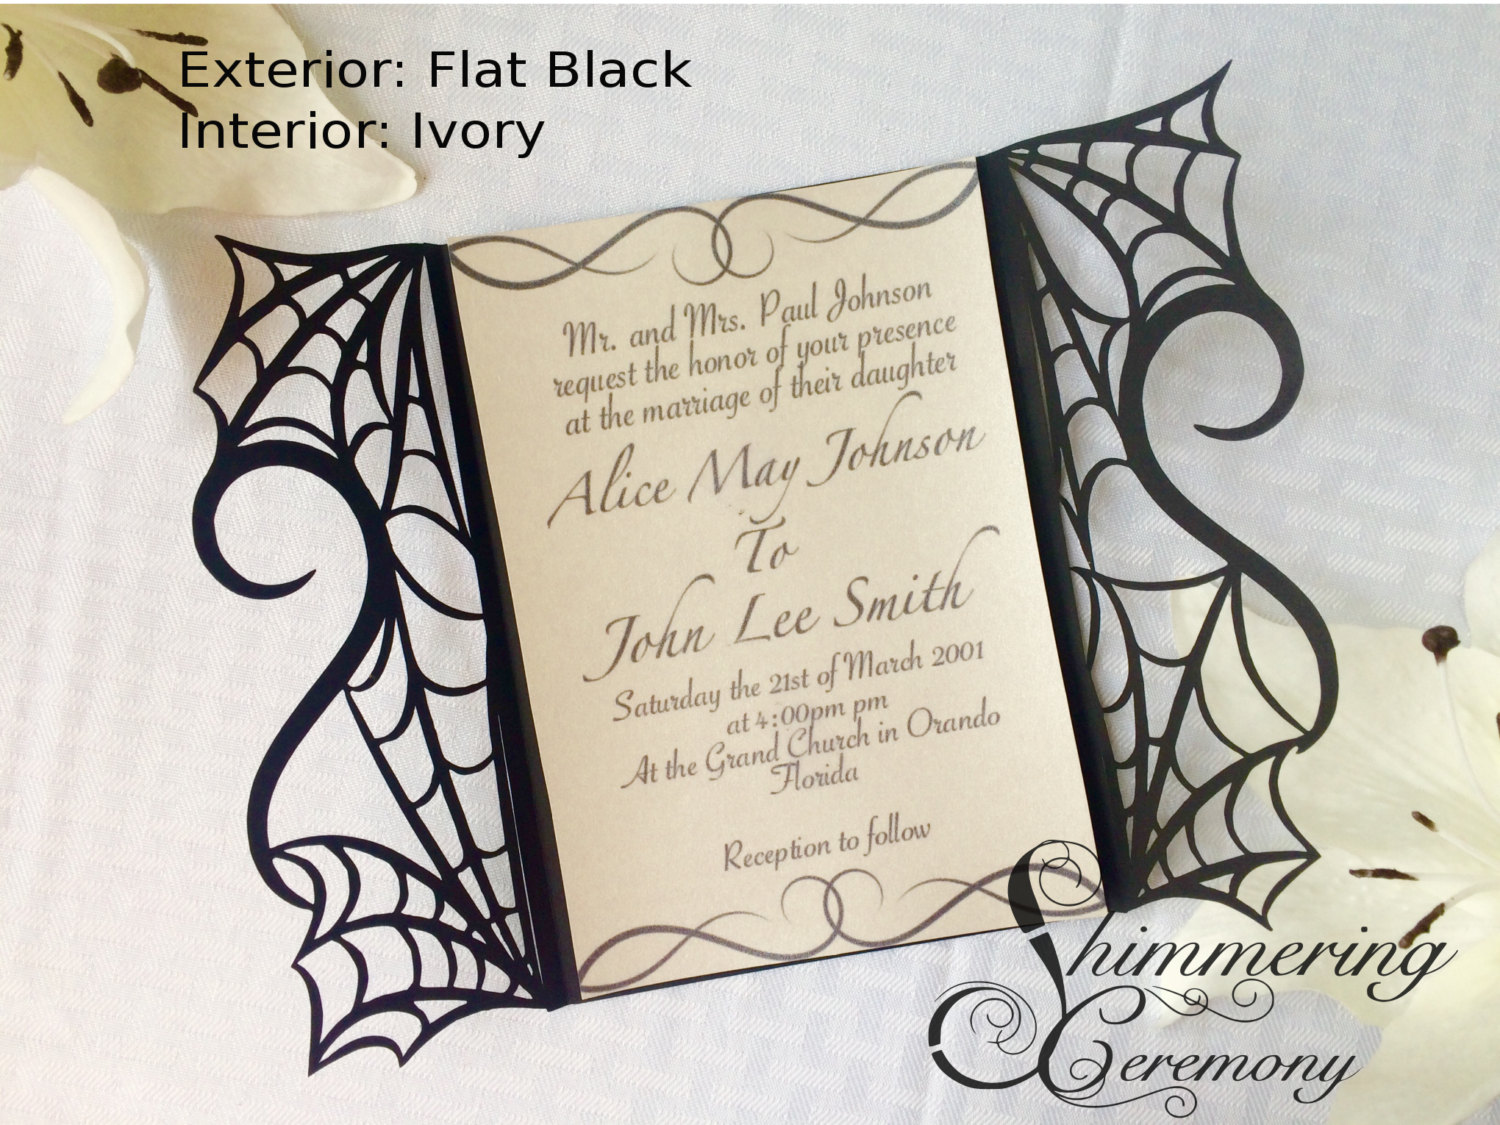 Gothic Spider Web Gate Invitation Shimmering Ceremony